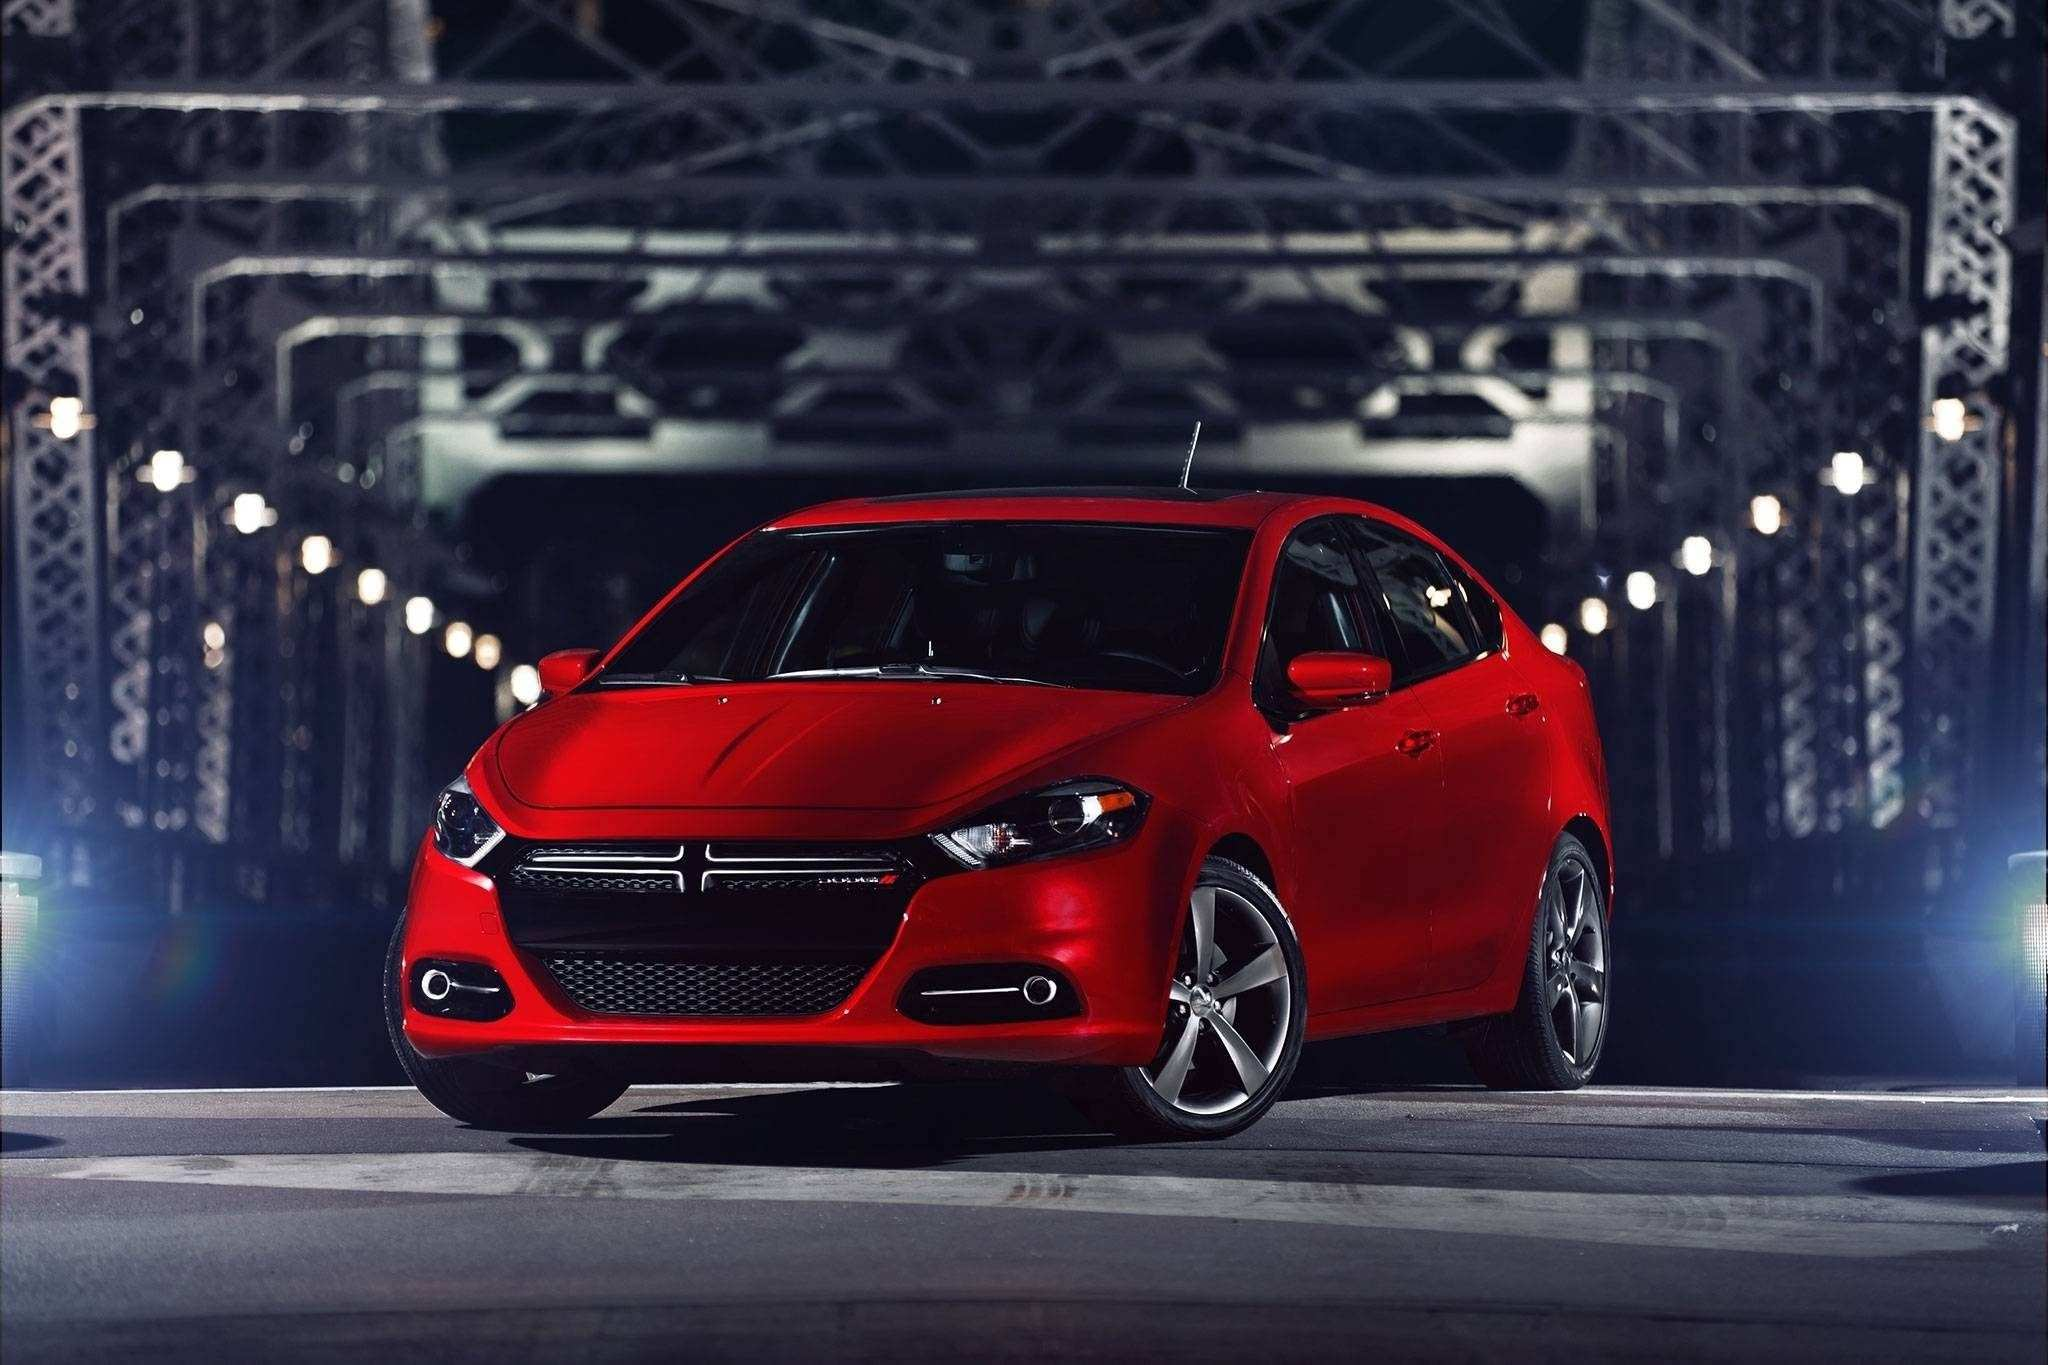 41 Concept of The Dodge 2019 Dart Review And Release Date Images for The Dodge 2019 Dart Review And Release Date